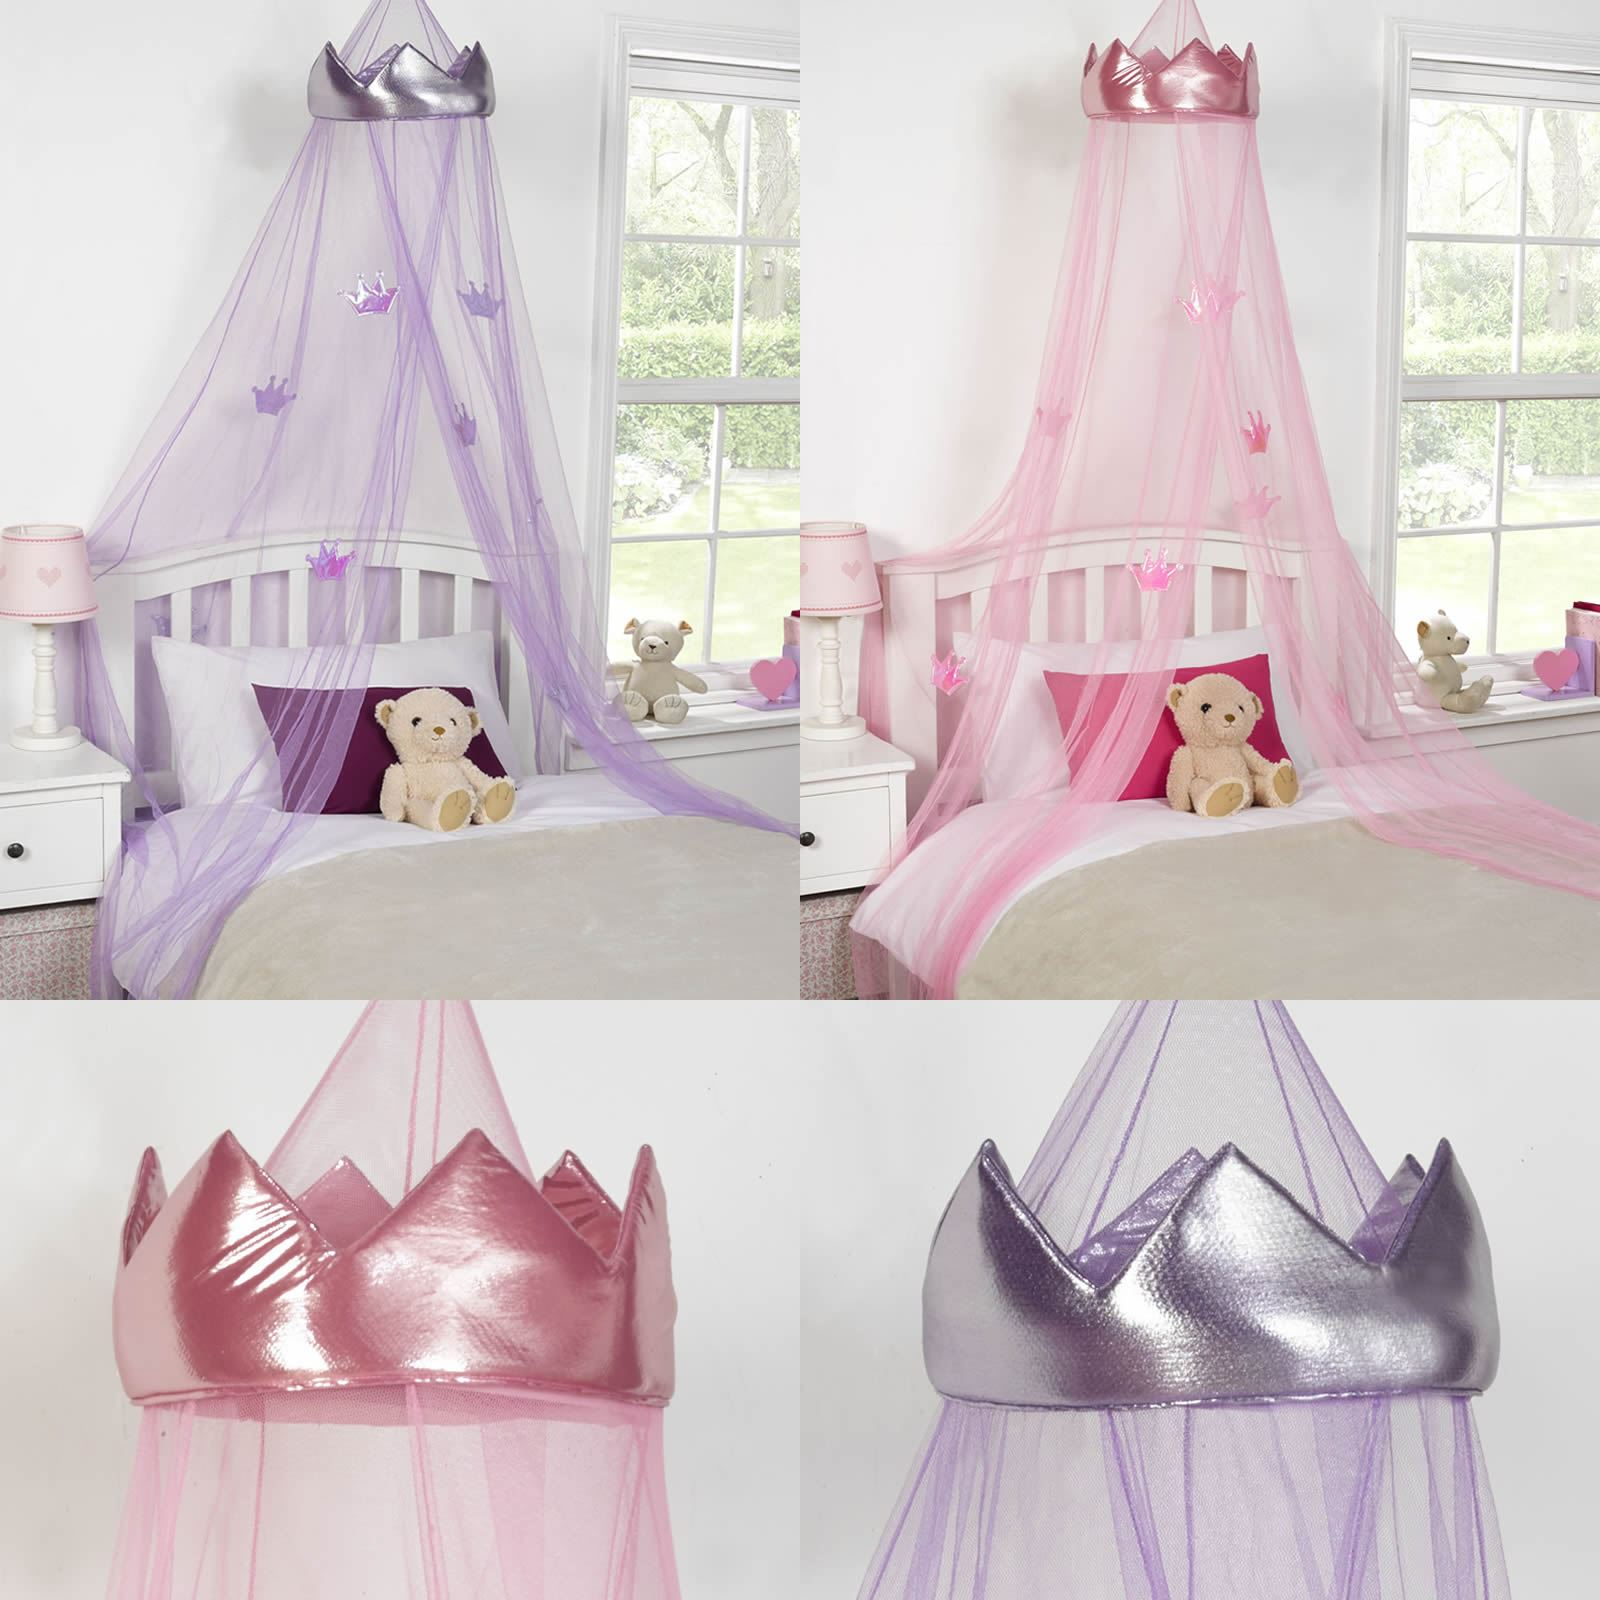 Ideal Textiles. KIDS CHILDRENS GIRLS PRINCESS CROWN BED CANOPY INSECT MOSQUITO NET